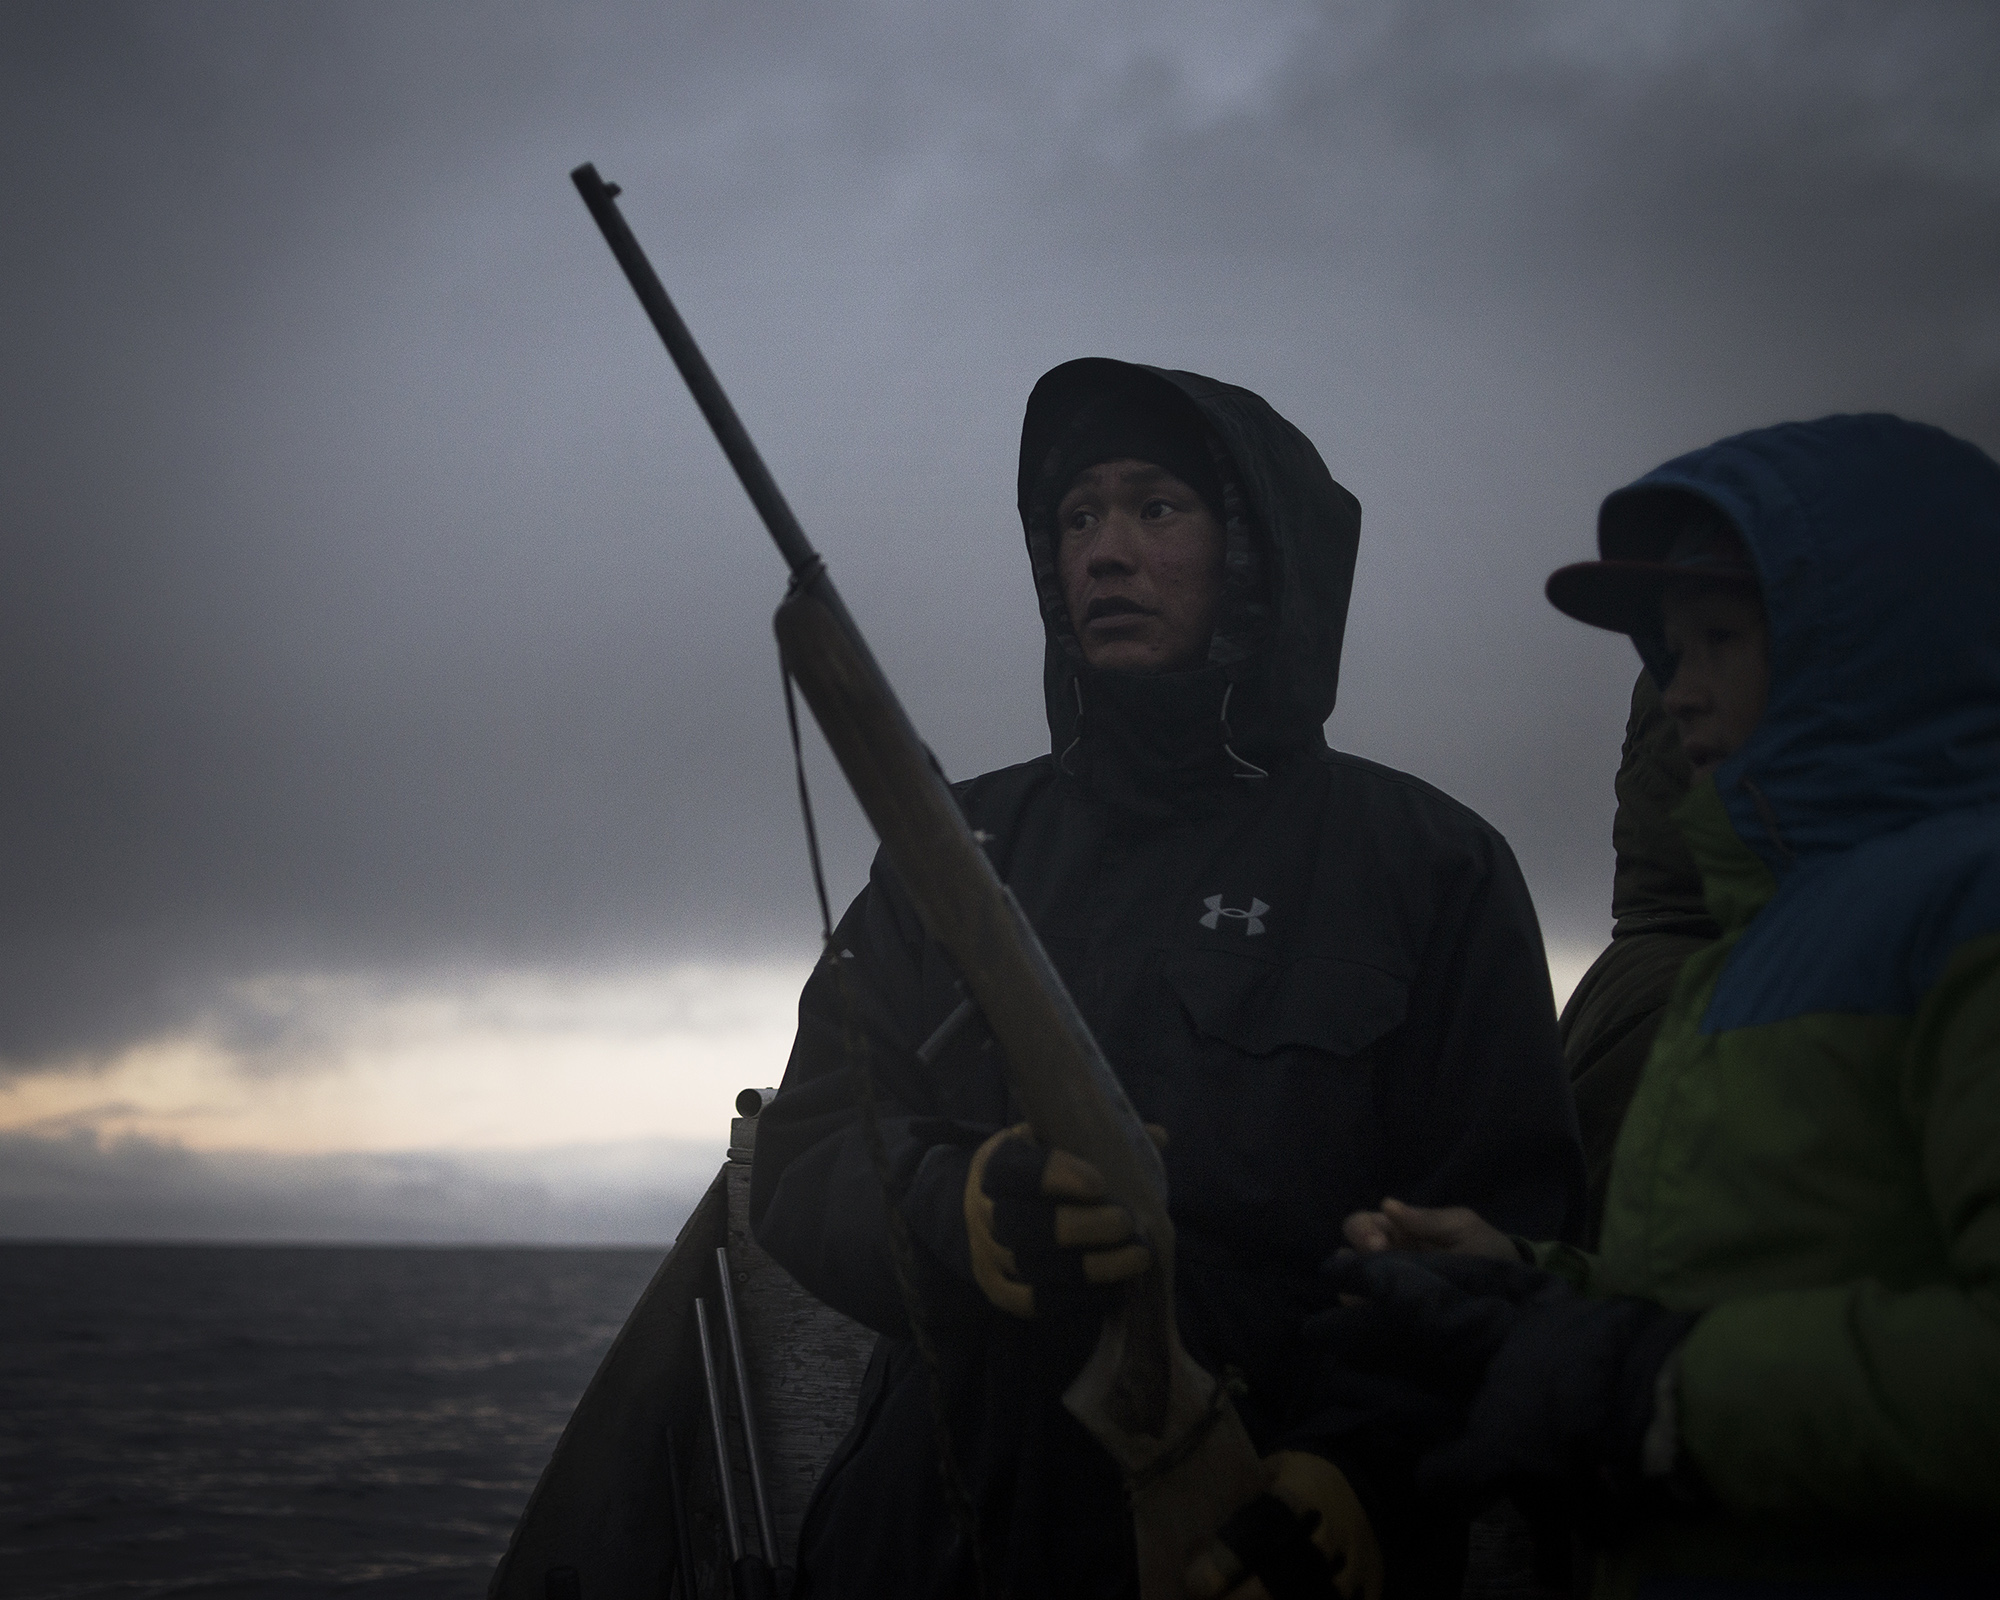 """Nanasi Illauq, 26, and Markoosi Illauq, 15, scan the water for seals. Nanasi has lost two of his older brothers to suicide. The family says there were no warning signs. Traditionally, people seek guidance and help from well-respected elders when they feel lost or depressed. Today the community organization Ilisaqsivik also offers many forms of mental health services. Nanasi says hunting is one of the few things that makes him feel better. He caught his first seal when he was 12. """"I was the proudest boy in the world."""" He says, explaining that the hunting tradition gives him peace because it allows him """"to be alone, where there's nobody around to make me mad or make me depressed."""" (Camilla Andersen/GroundTruth)"""